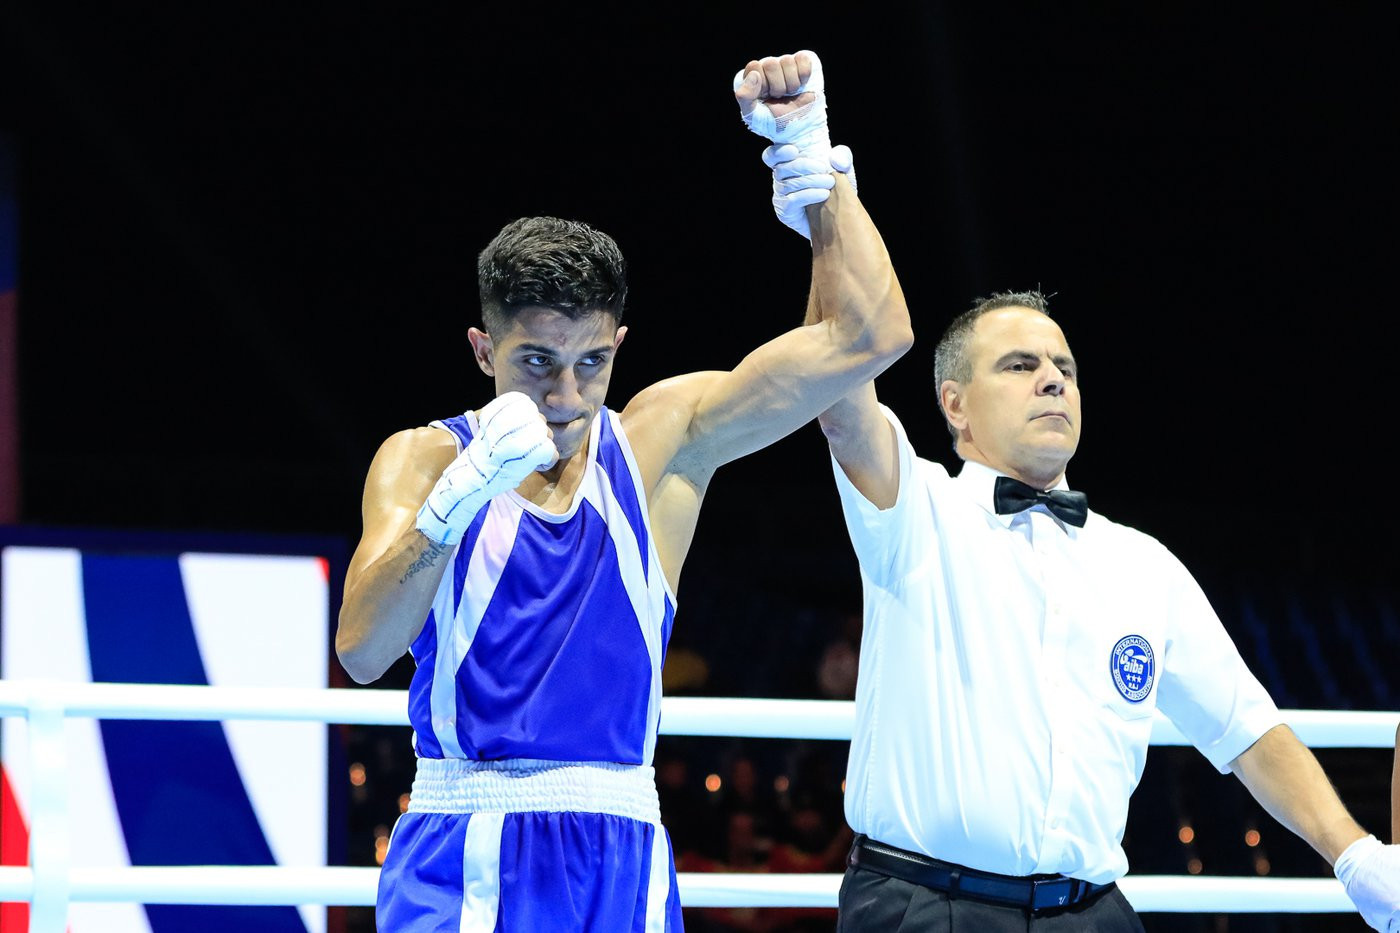 AIBA Men's World Championships 2019: Day four of competition